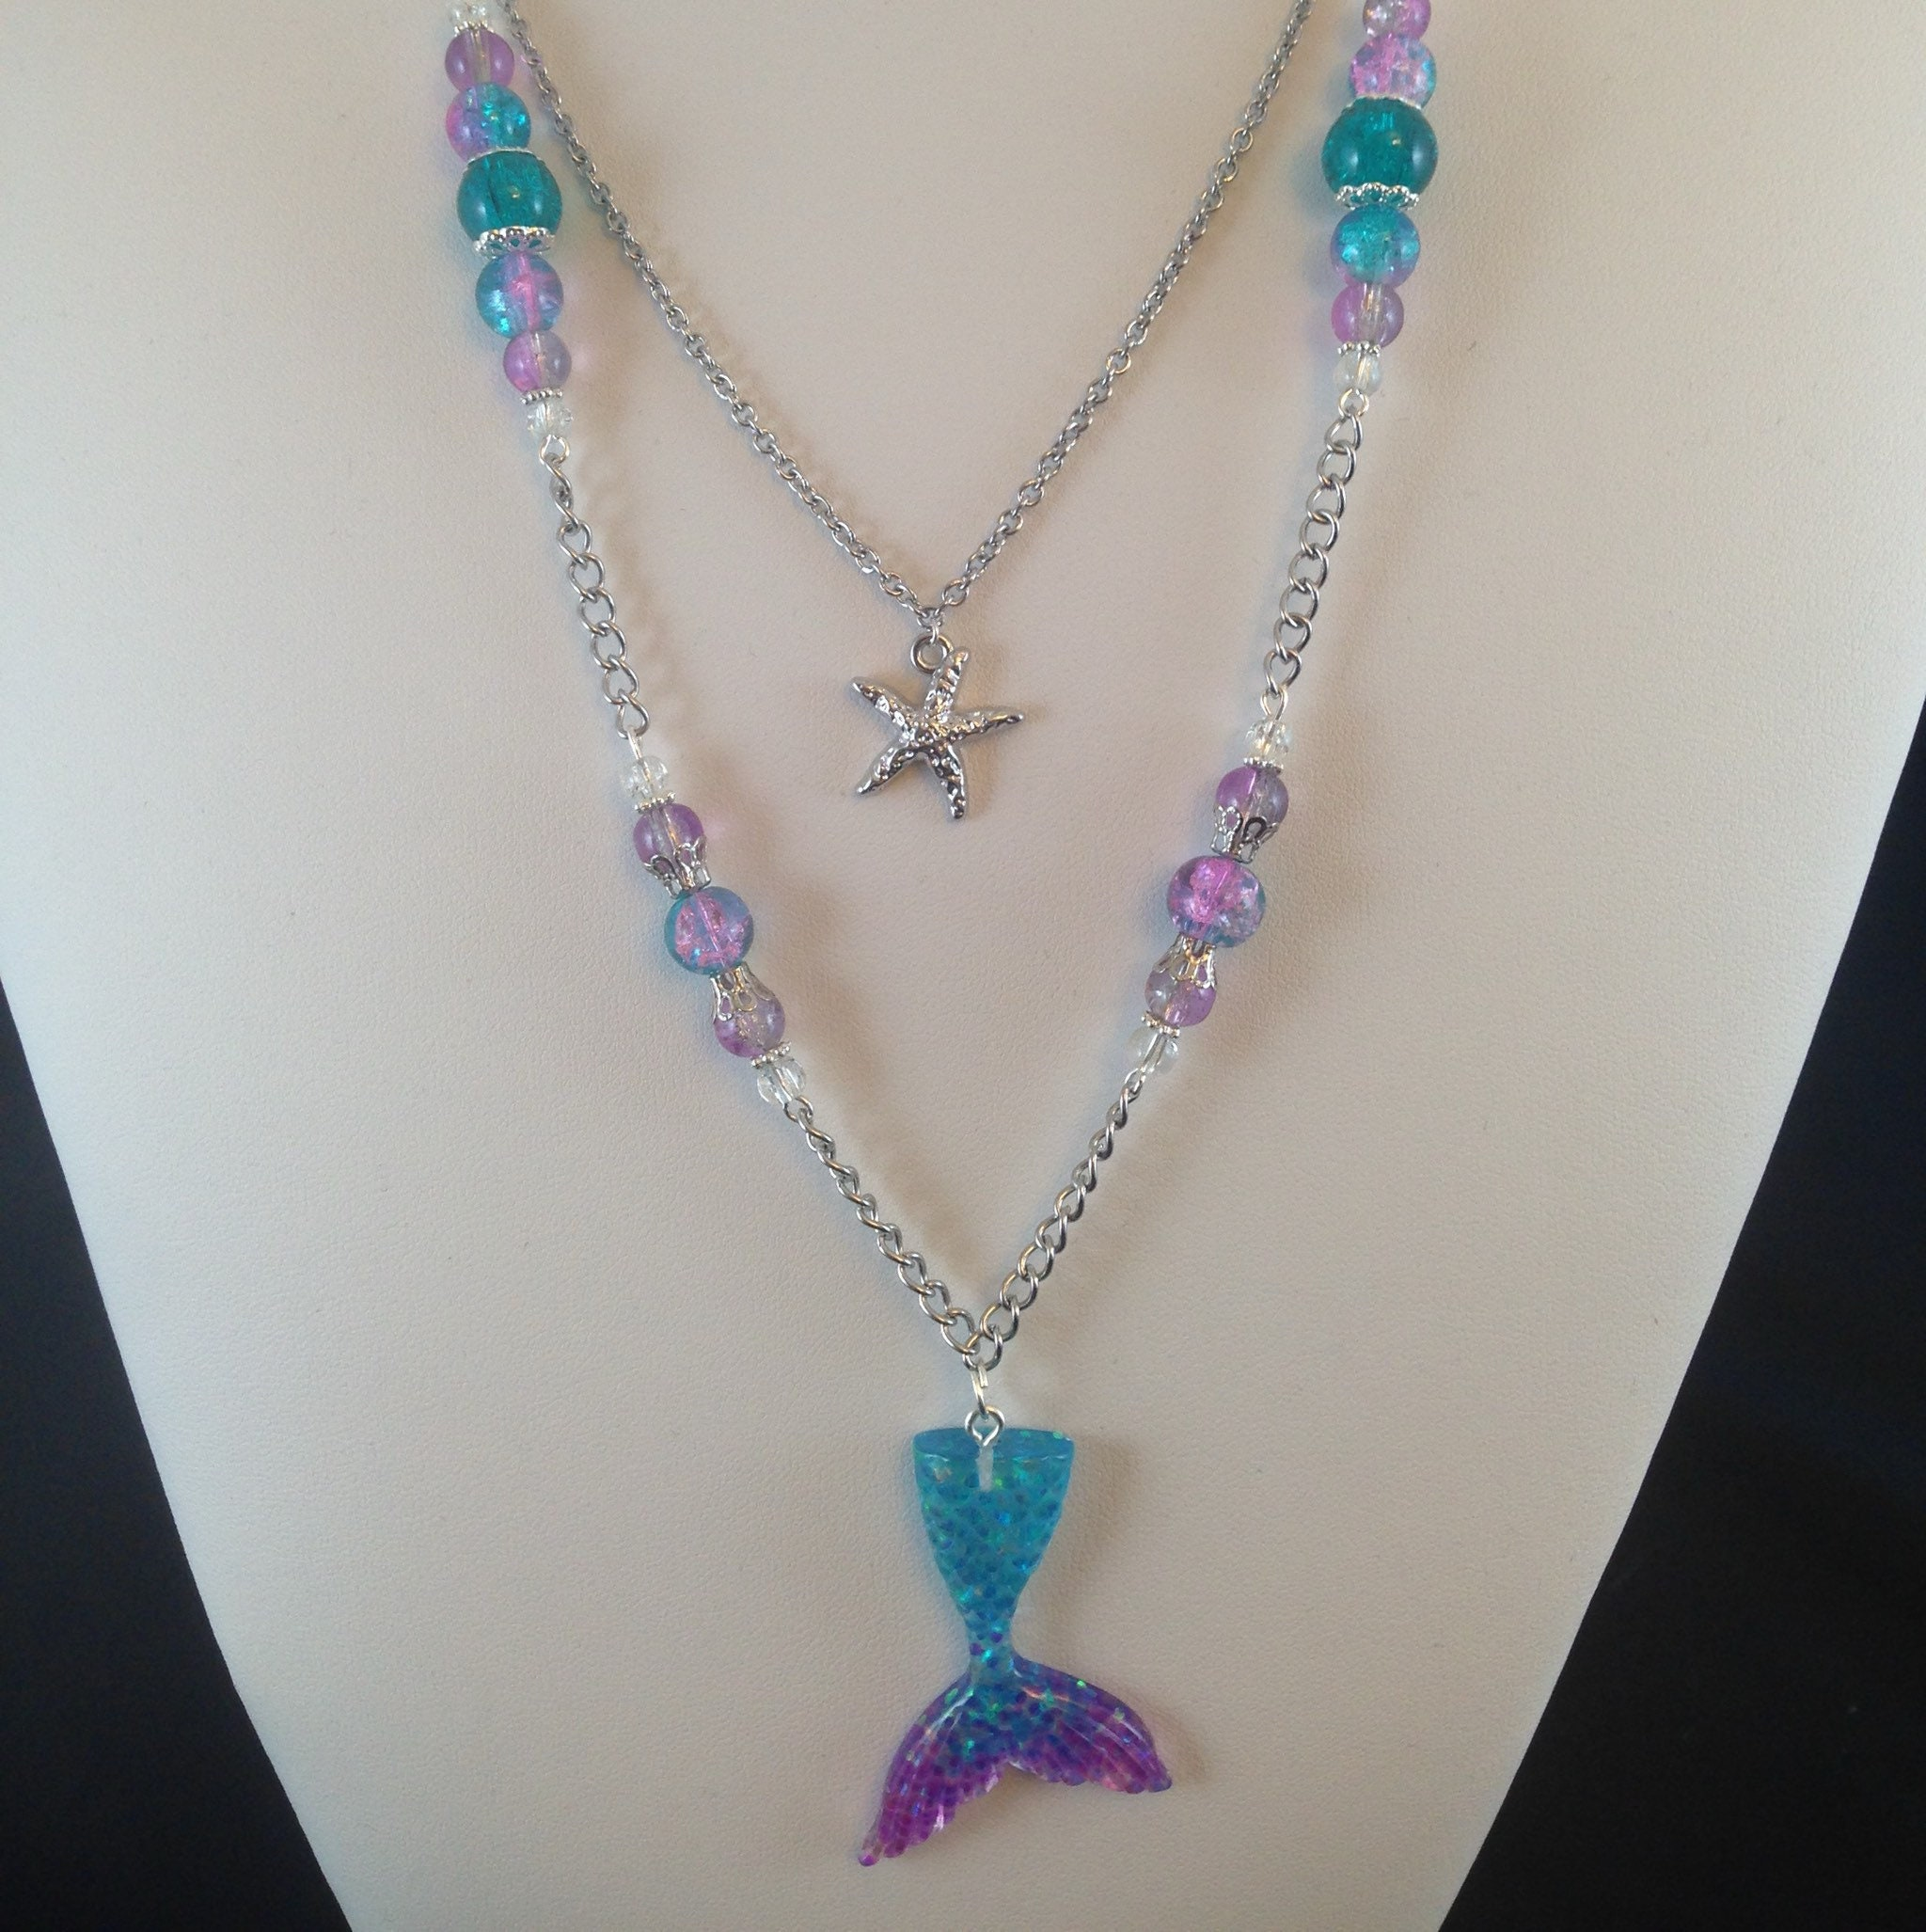 Handmade pink and purple resin pendant with stainless steel chain blue